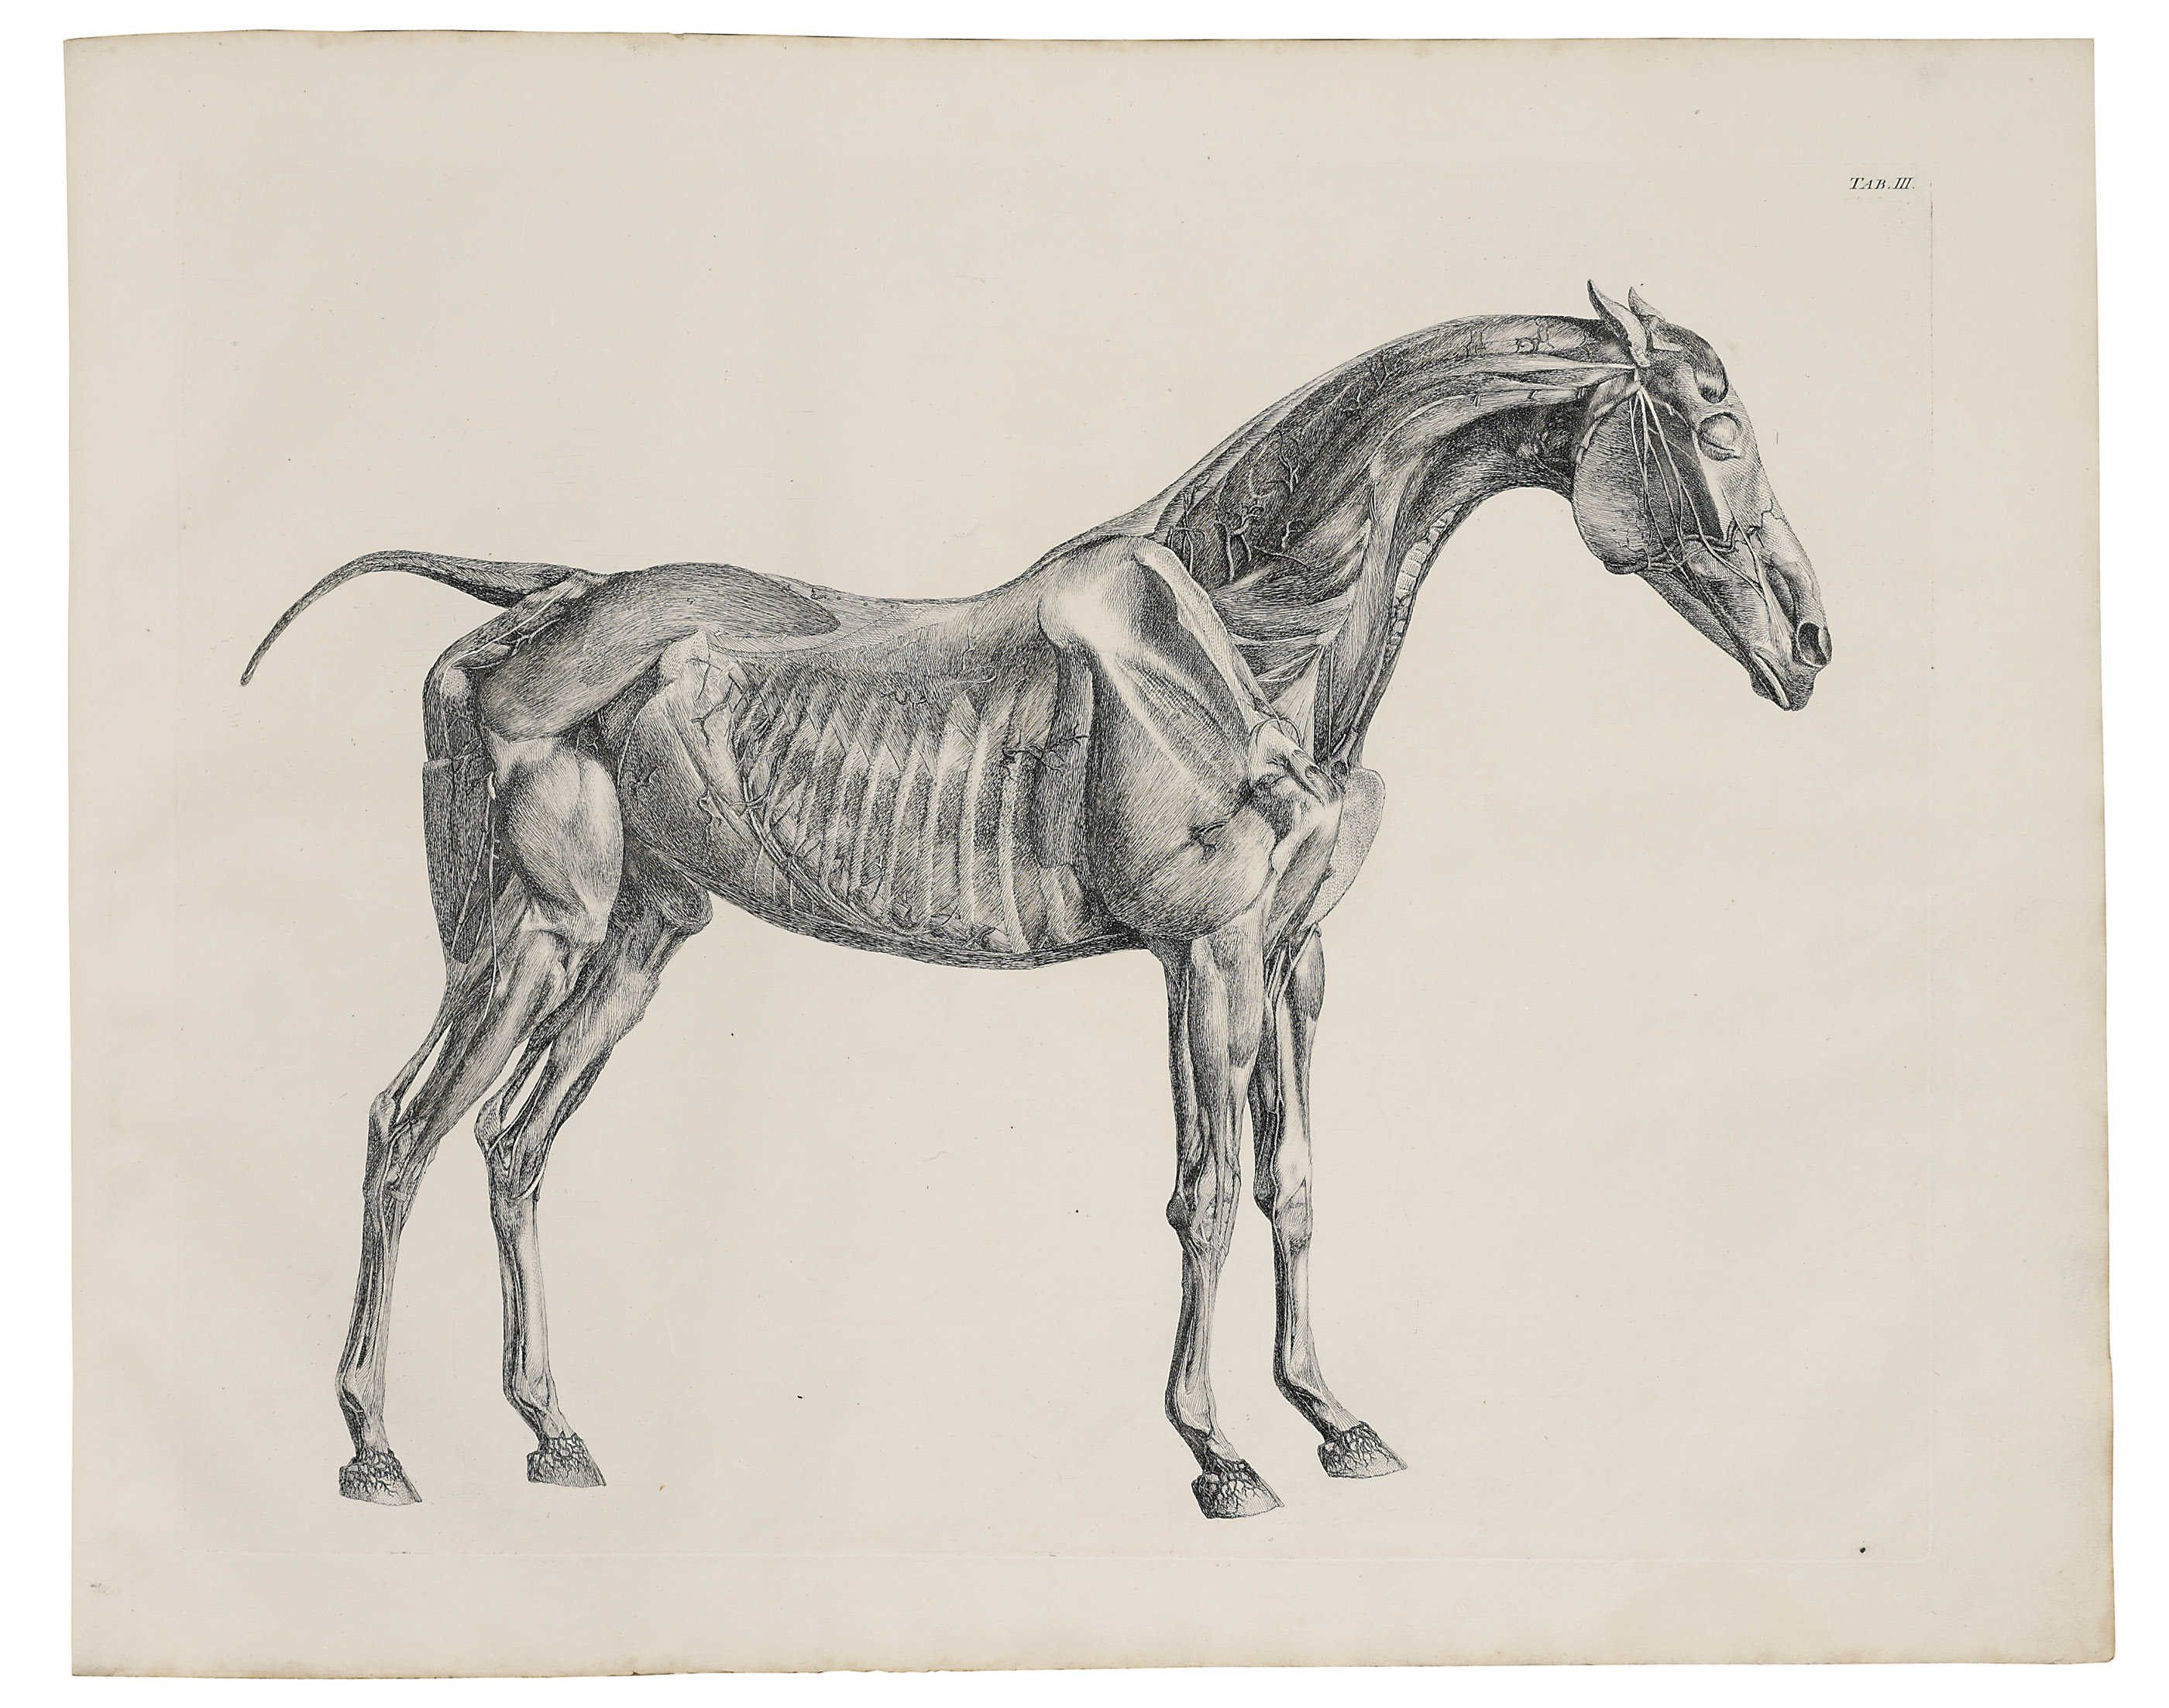 STUBBS, George (1724-1806). The Anatomy of the Horse. London: J ...